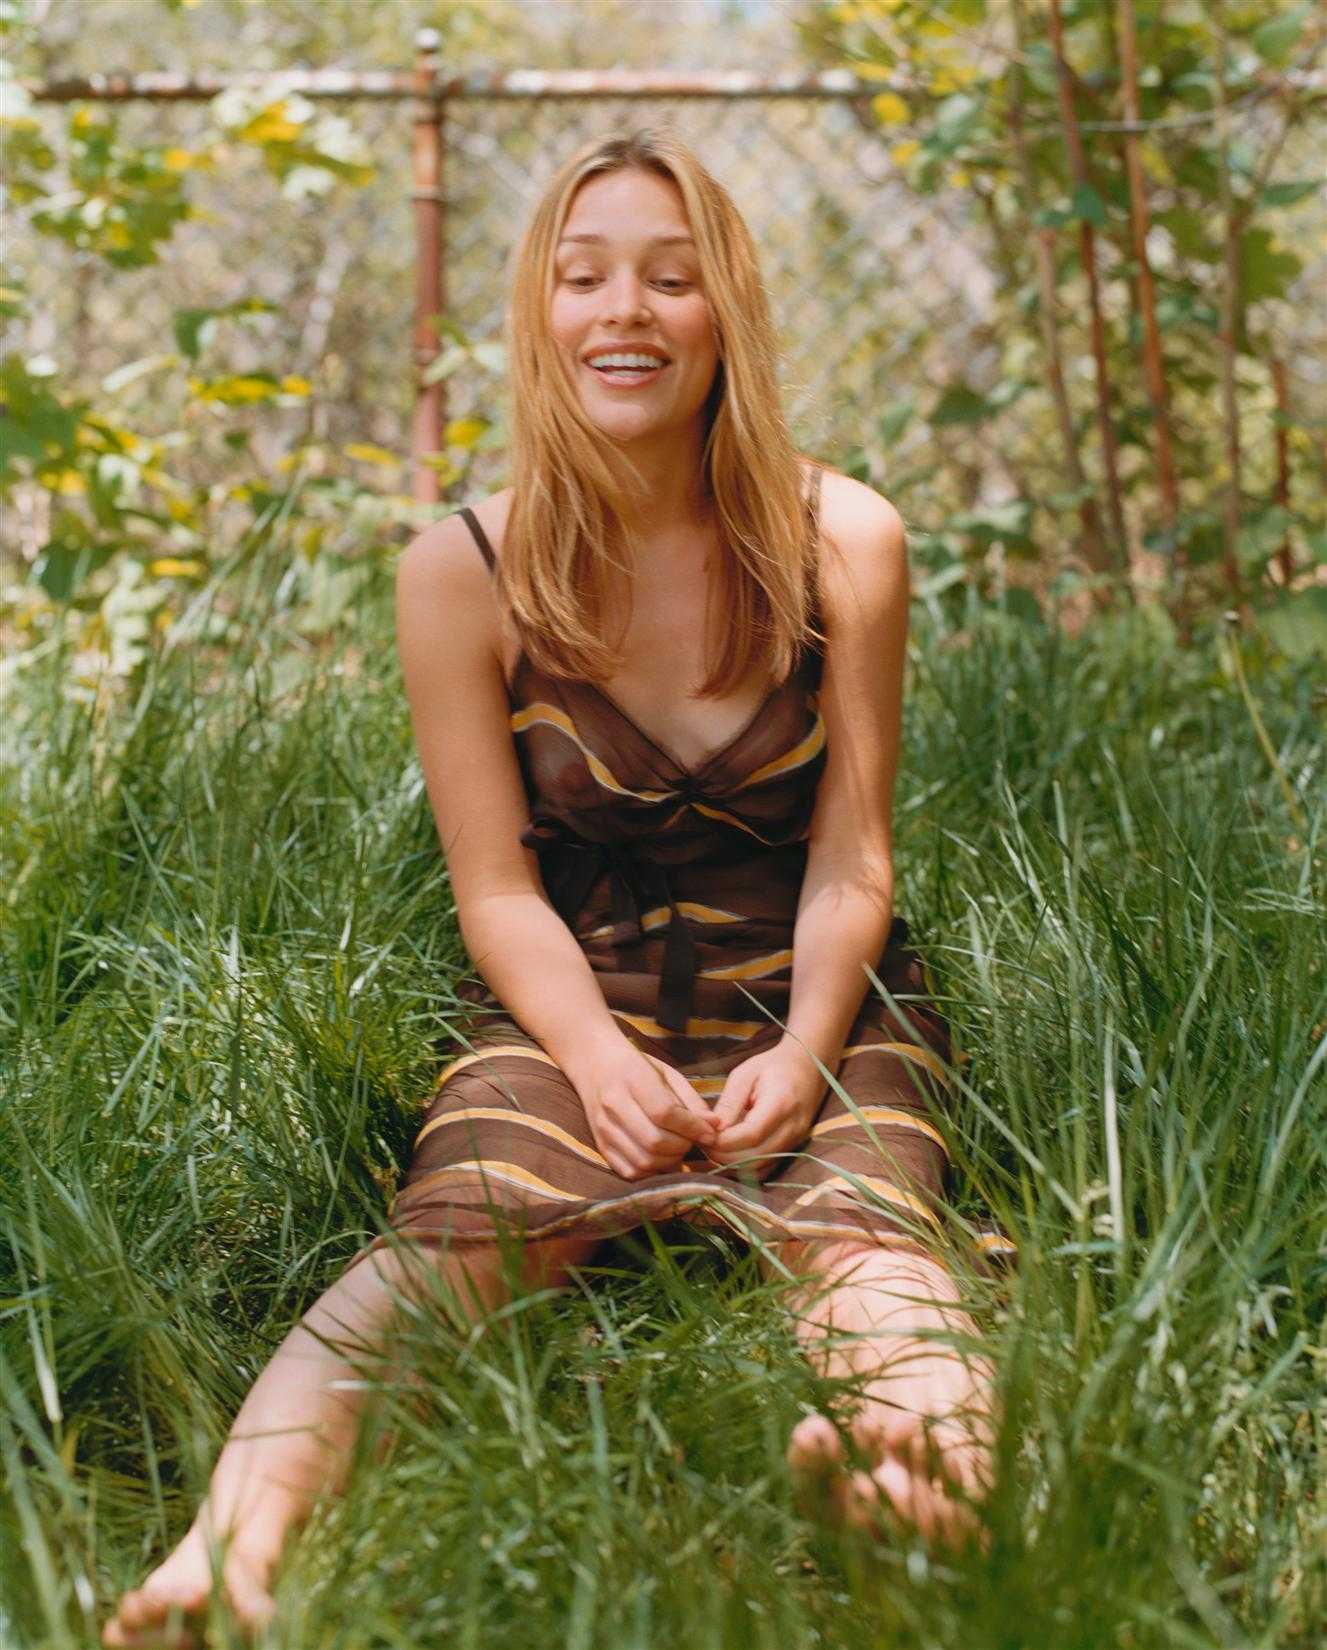 ImagesImages Piper Perabo nudes (18 photo), Tits, Cleavage, Selfie, legs 2020